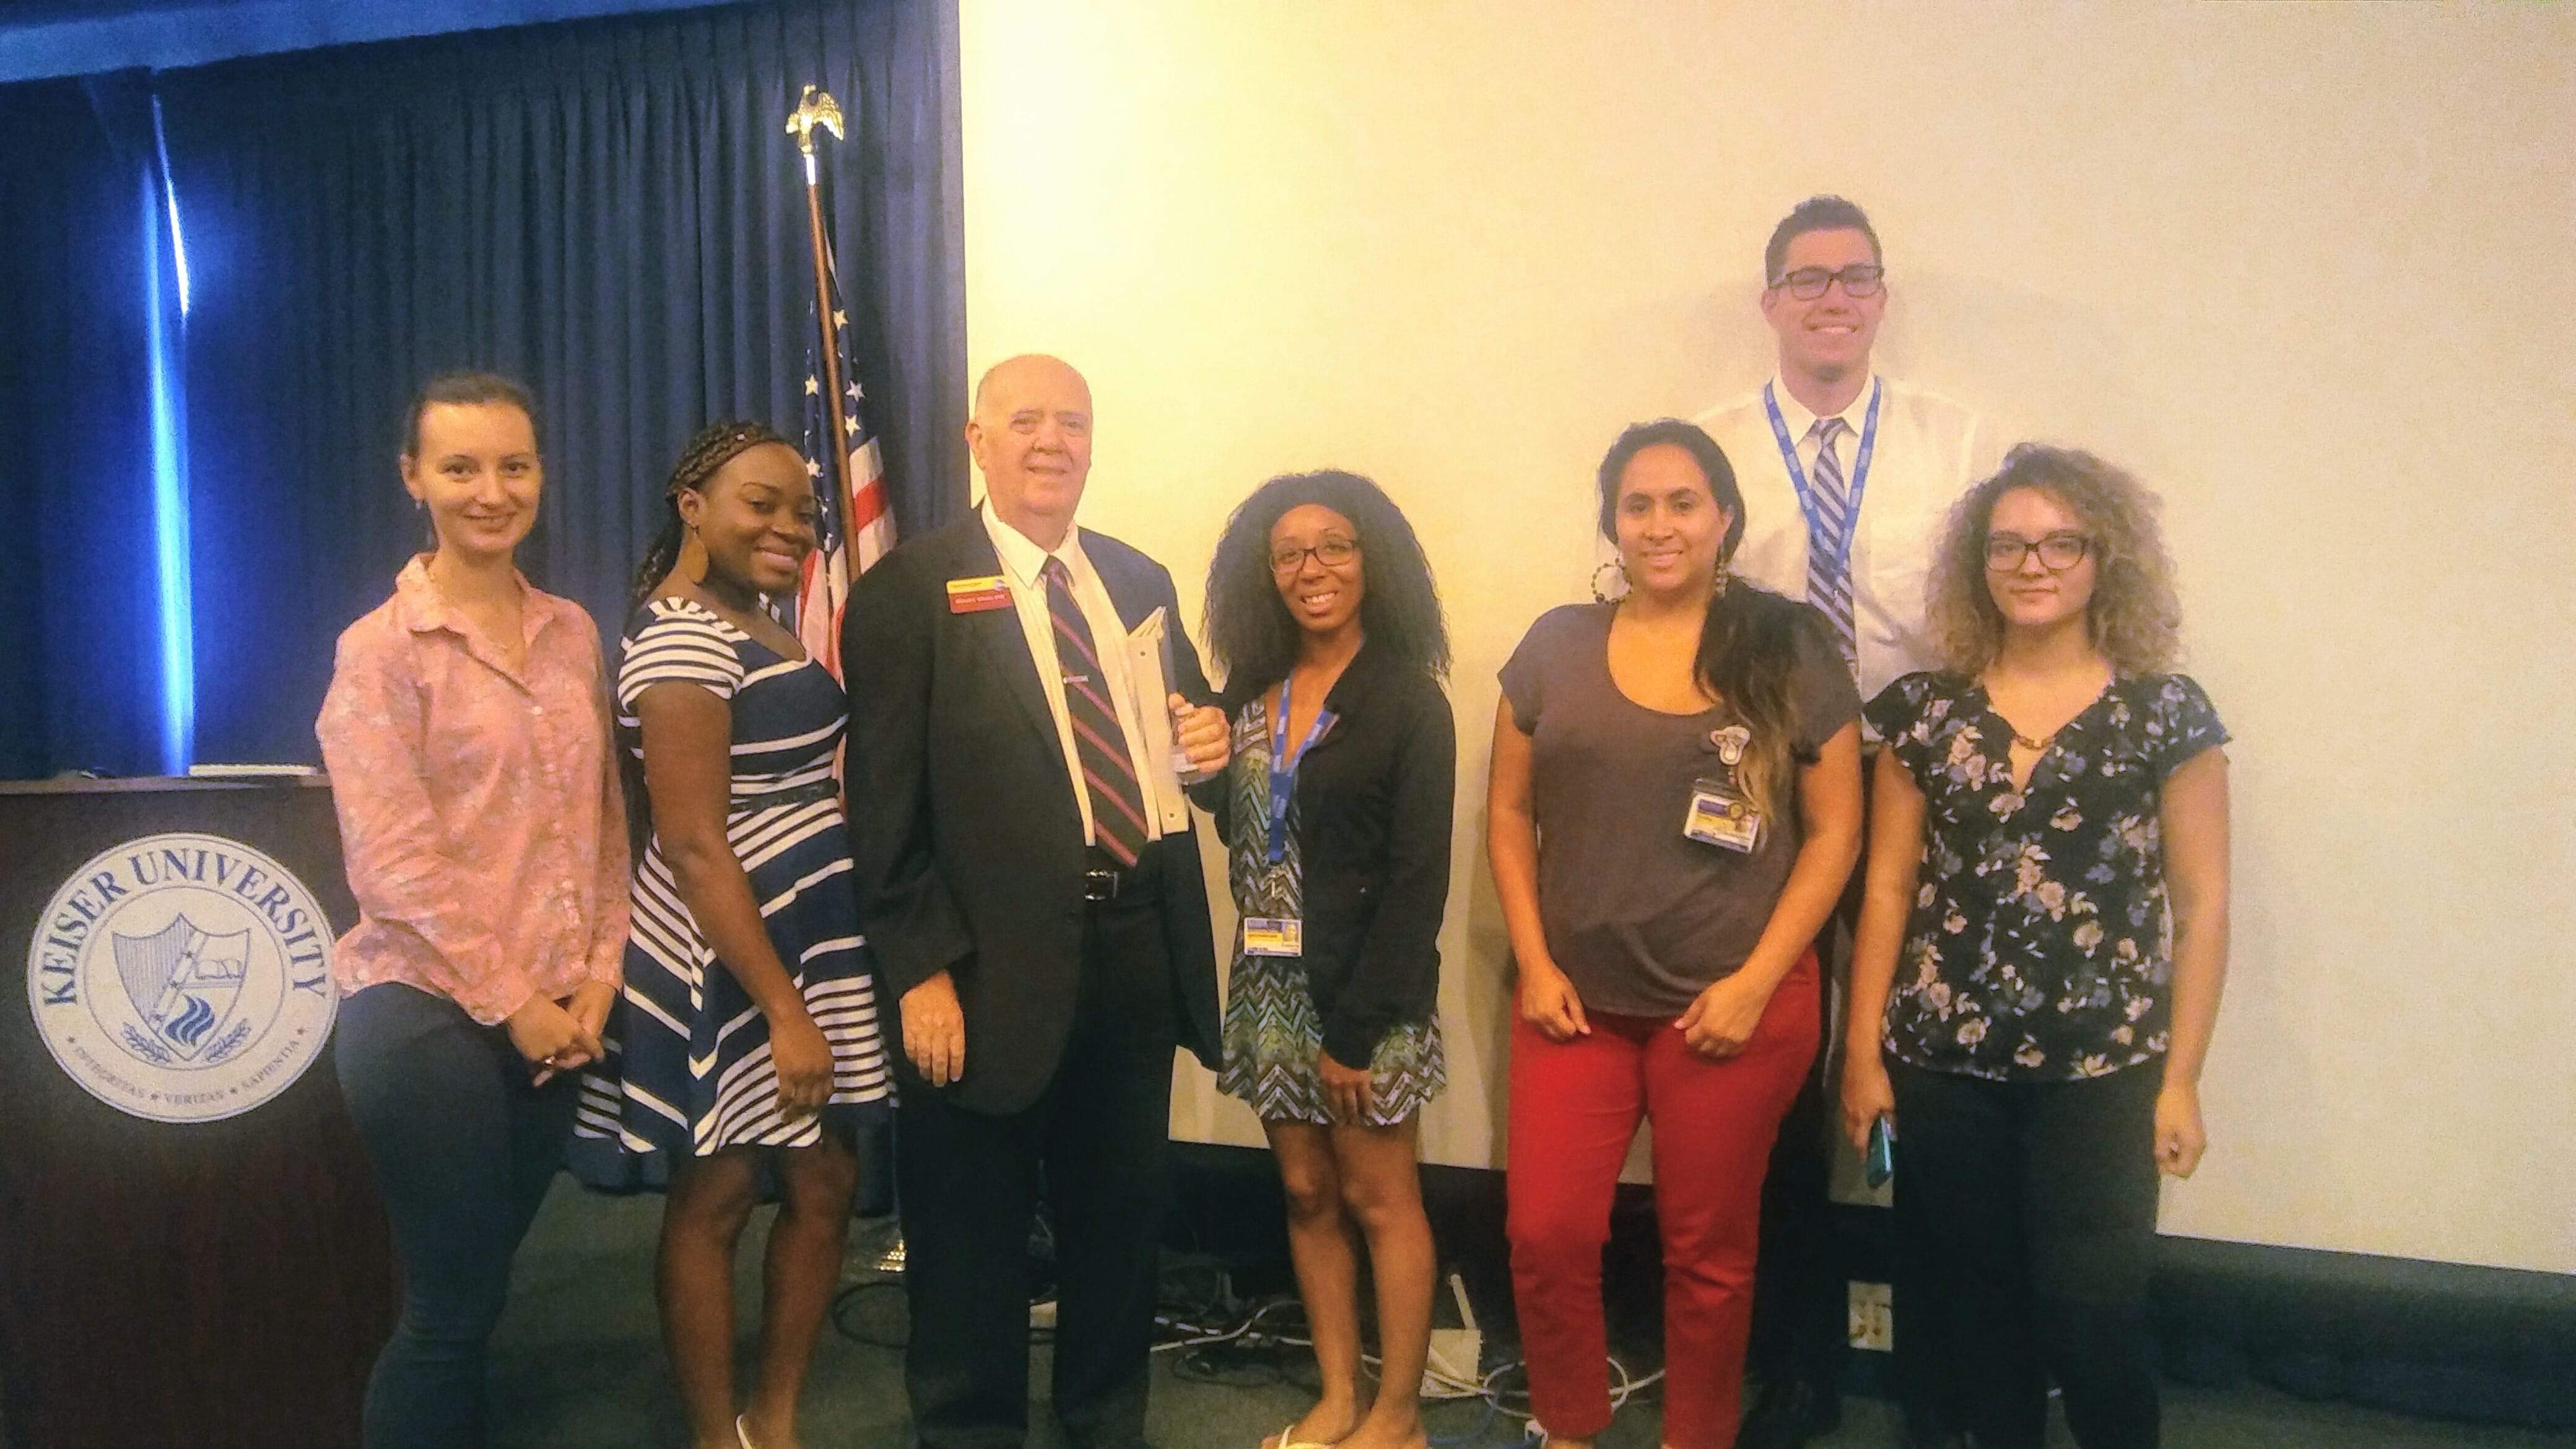 Ft. Lauderdale Students Learn from a Distinguished Toastmaster